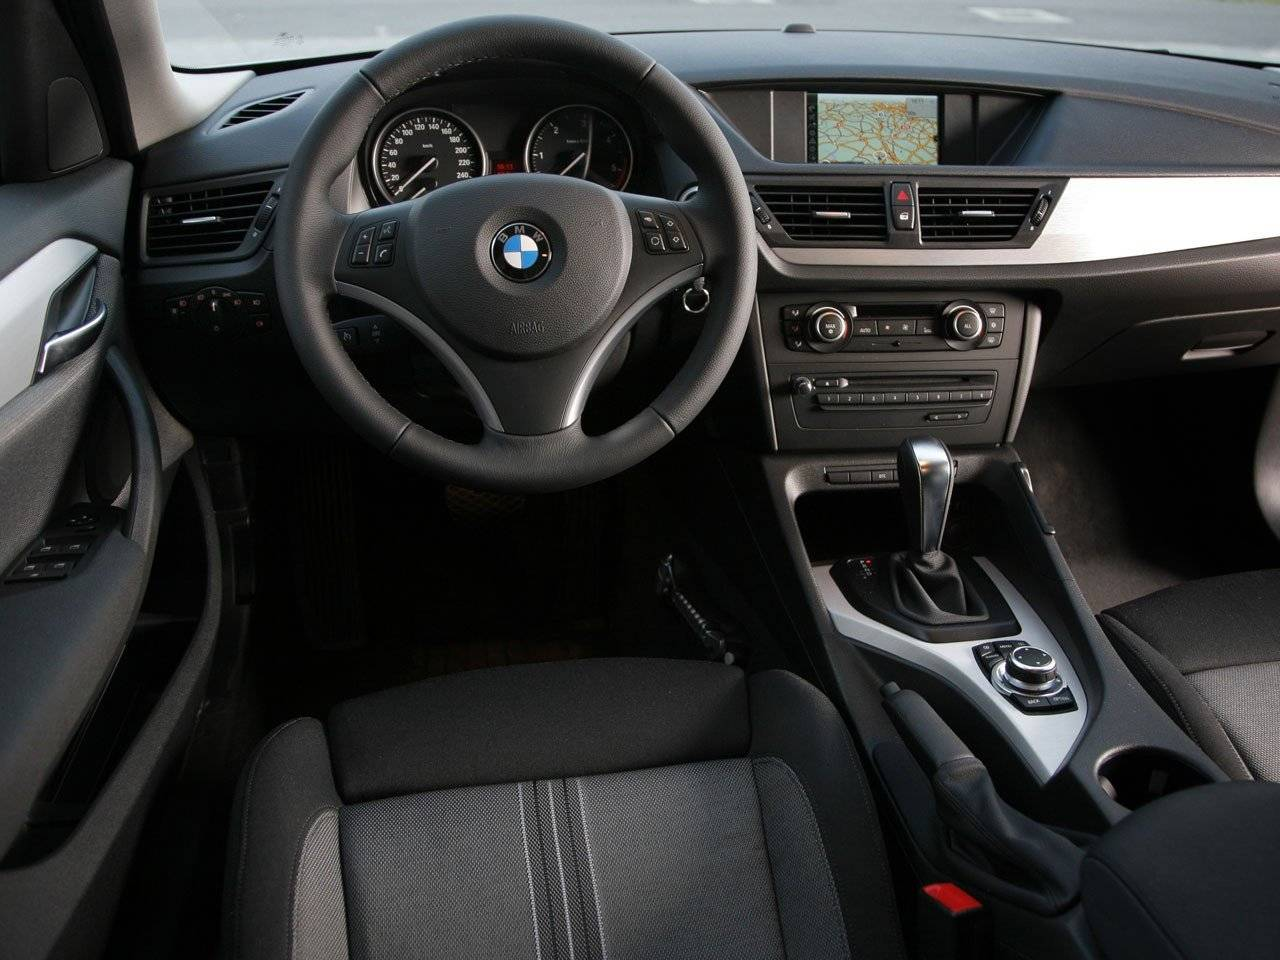 test bmw x1 autotests. Black Bedroom Furniture Sets. Home Design Ideas